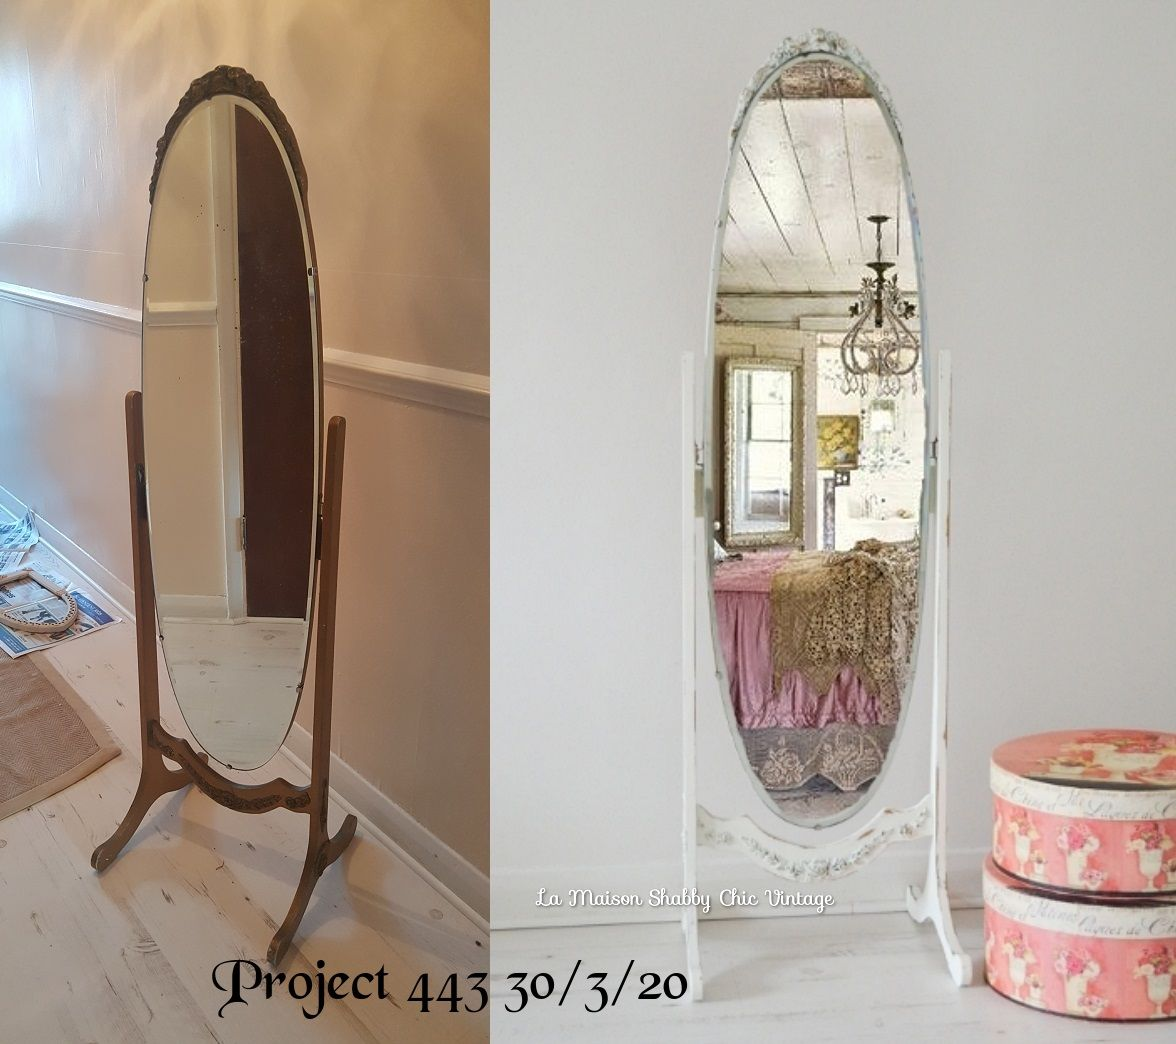 W120 x d60 x h46cm. 410 Before After Photos From La Maison Shabby Chic Vintage Ideas Shabby Chic Before After Photo Shabby